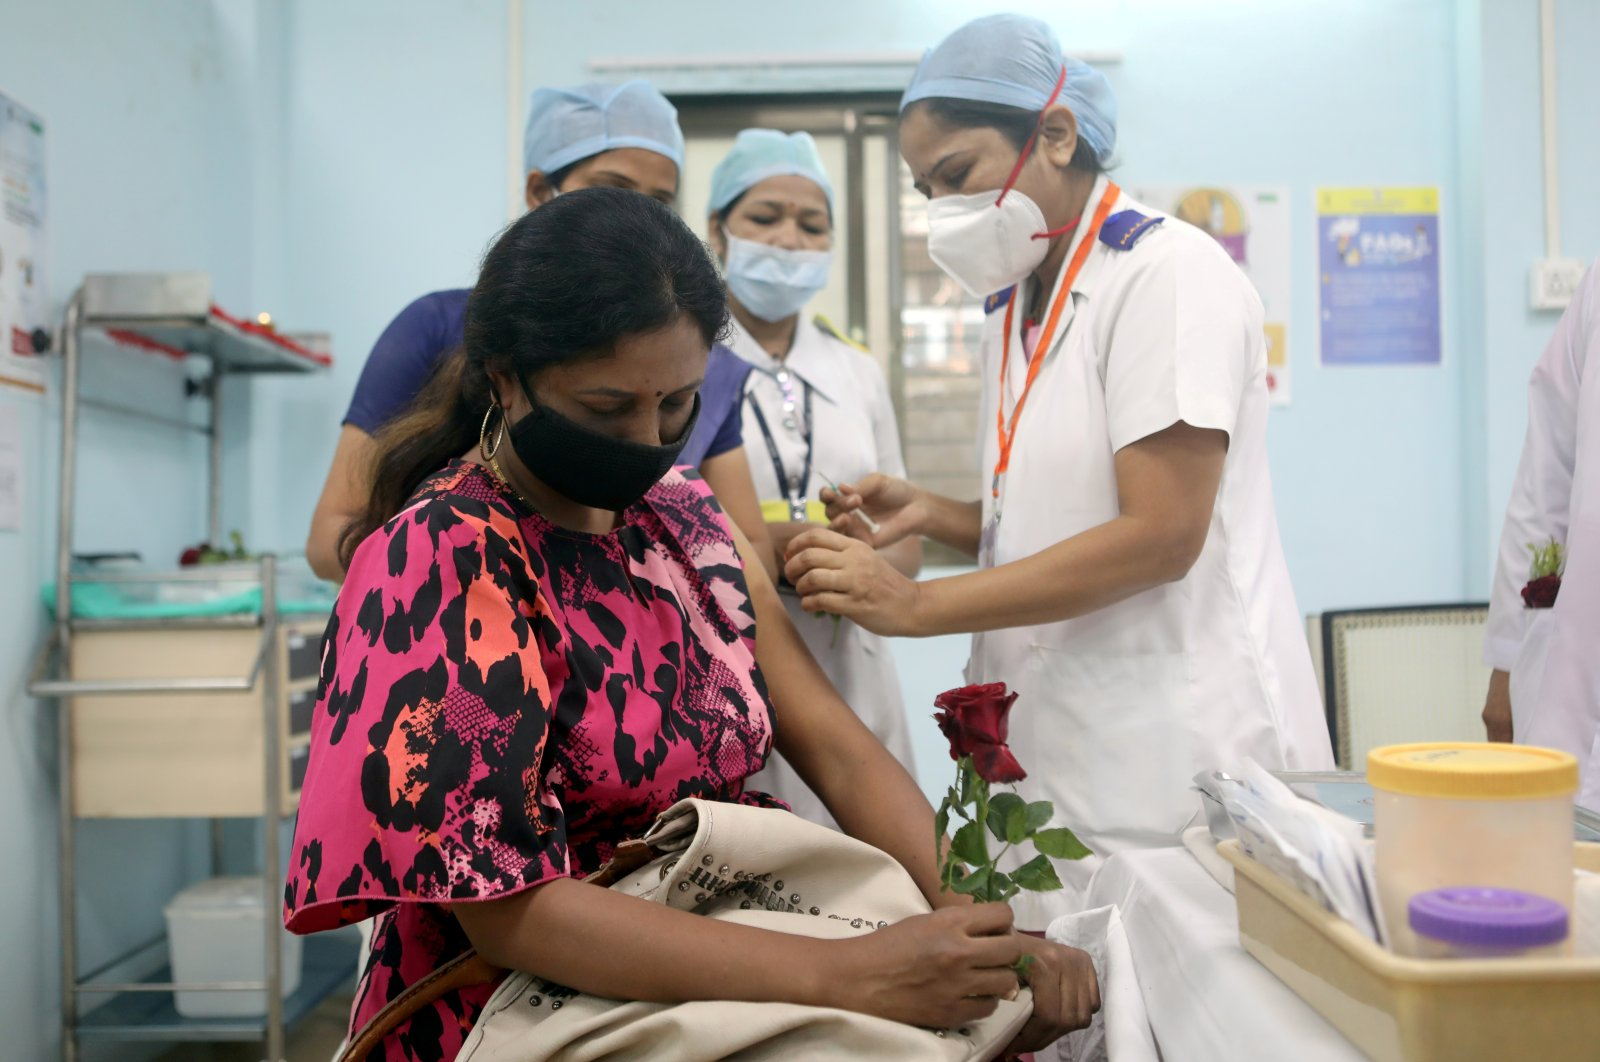 A health care worker holding a rose receives AstraZeneca's COVISHIELD vaccine at a medical center during the coronavirus vaccination campaign, Mumbai, India, Jan. 16, 2021. (Reuters Photo)